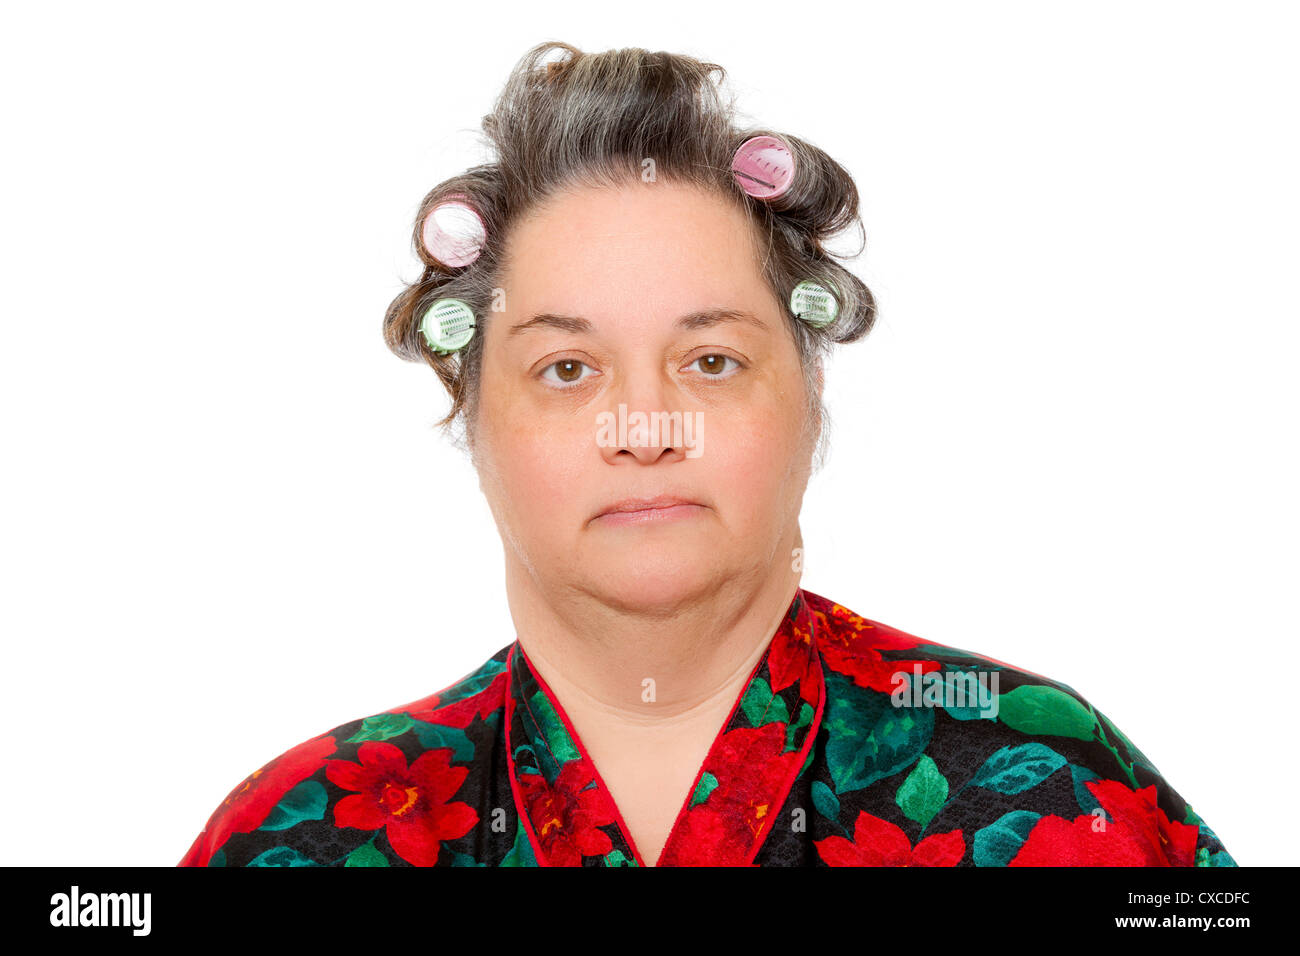 a middle aged woman wearing curlers in her hair stock photo